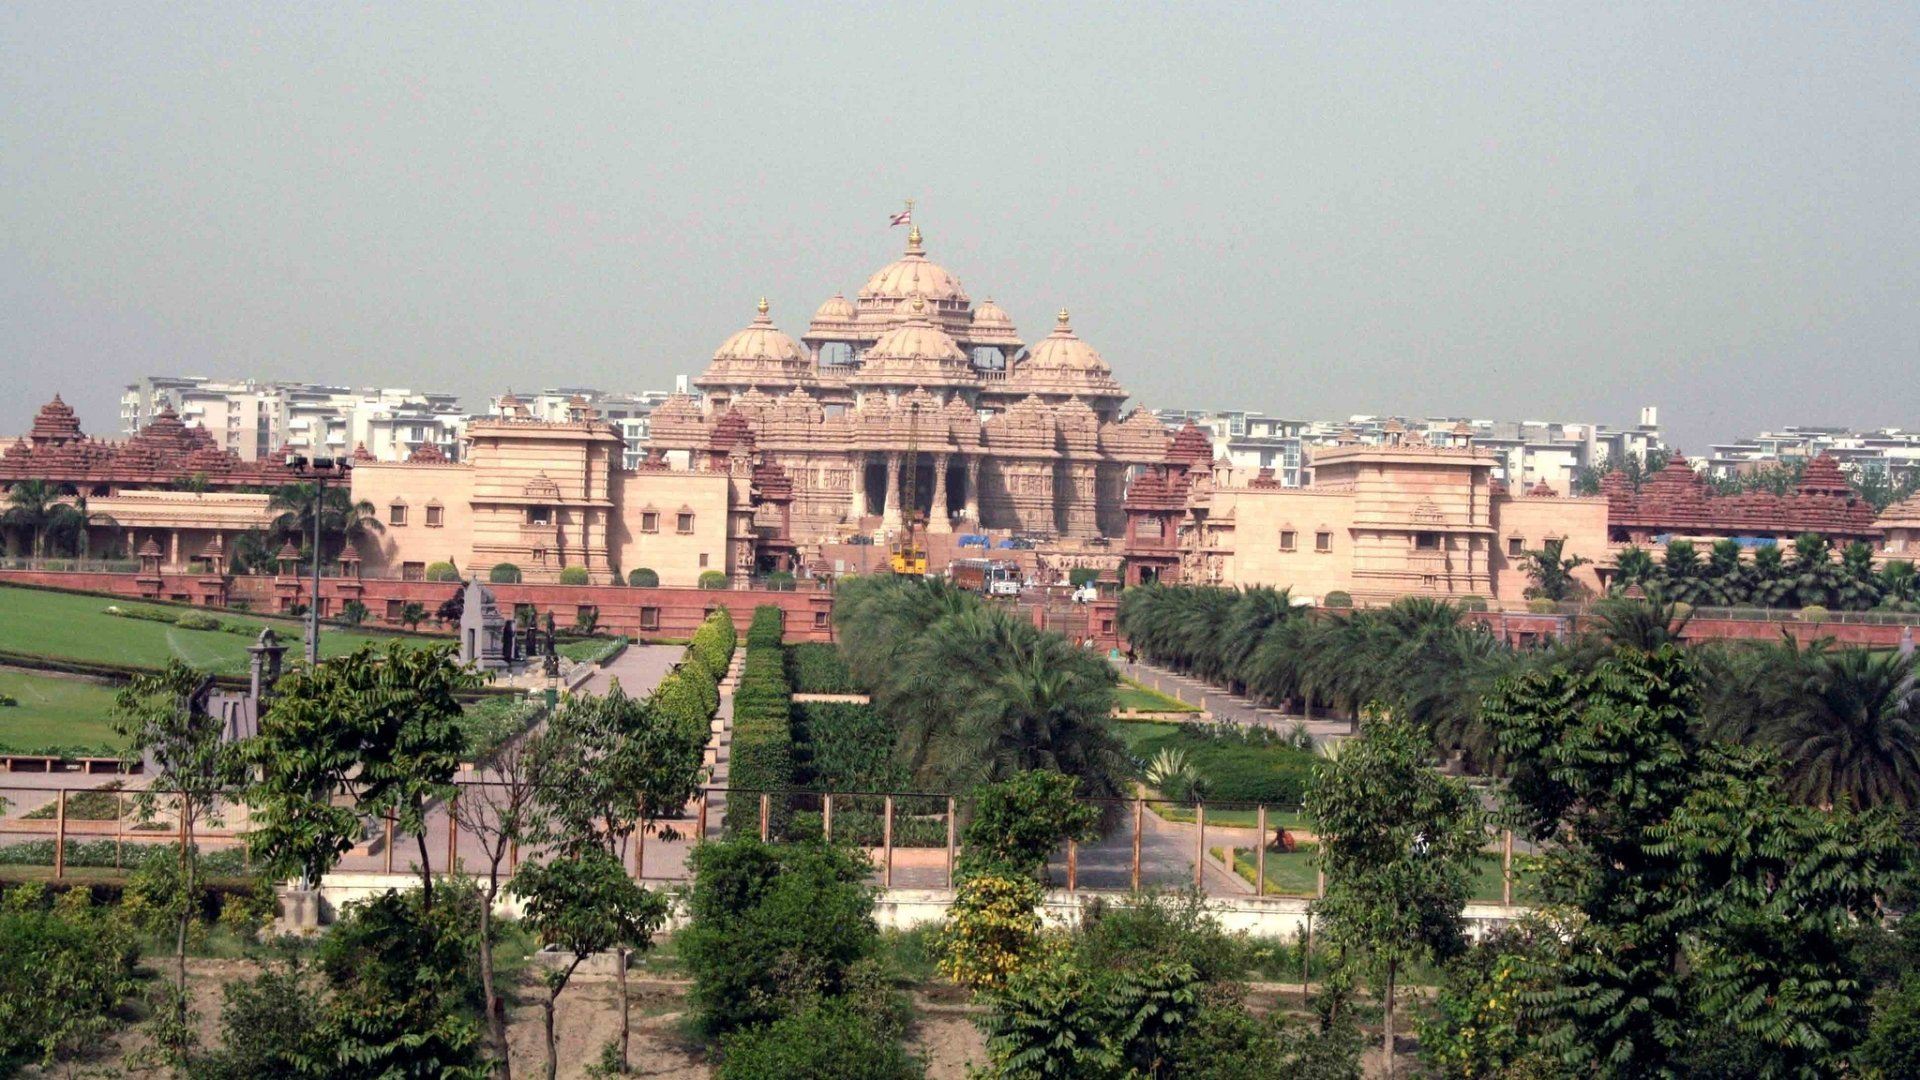 Akshardham temple hd wallpaper background image 1920x1080 id wallpapers id481044 thecheapjerseys Gallery